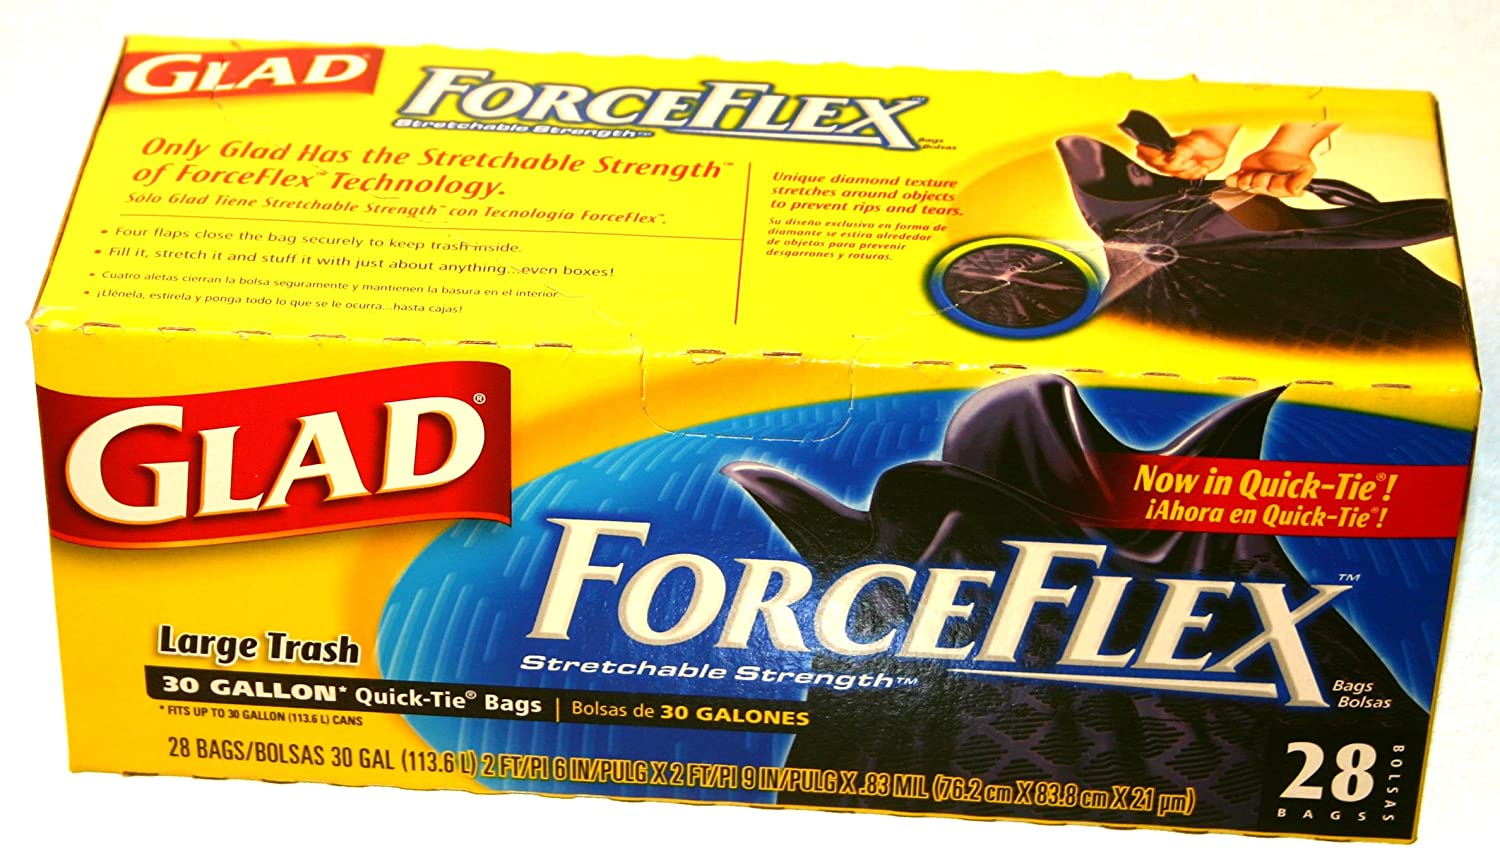 Amazon.com: Glad Force Flex 30 Gallon-28 bags (pack of 3): Home & Kitchen